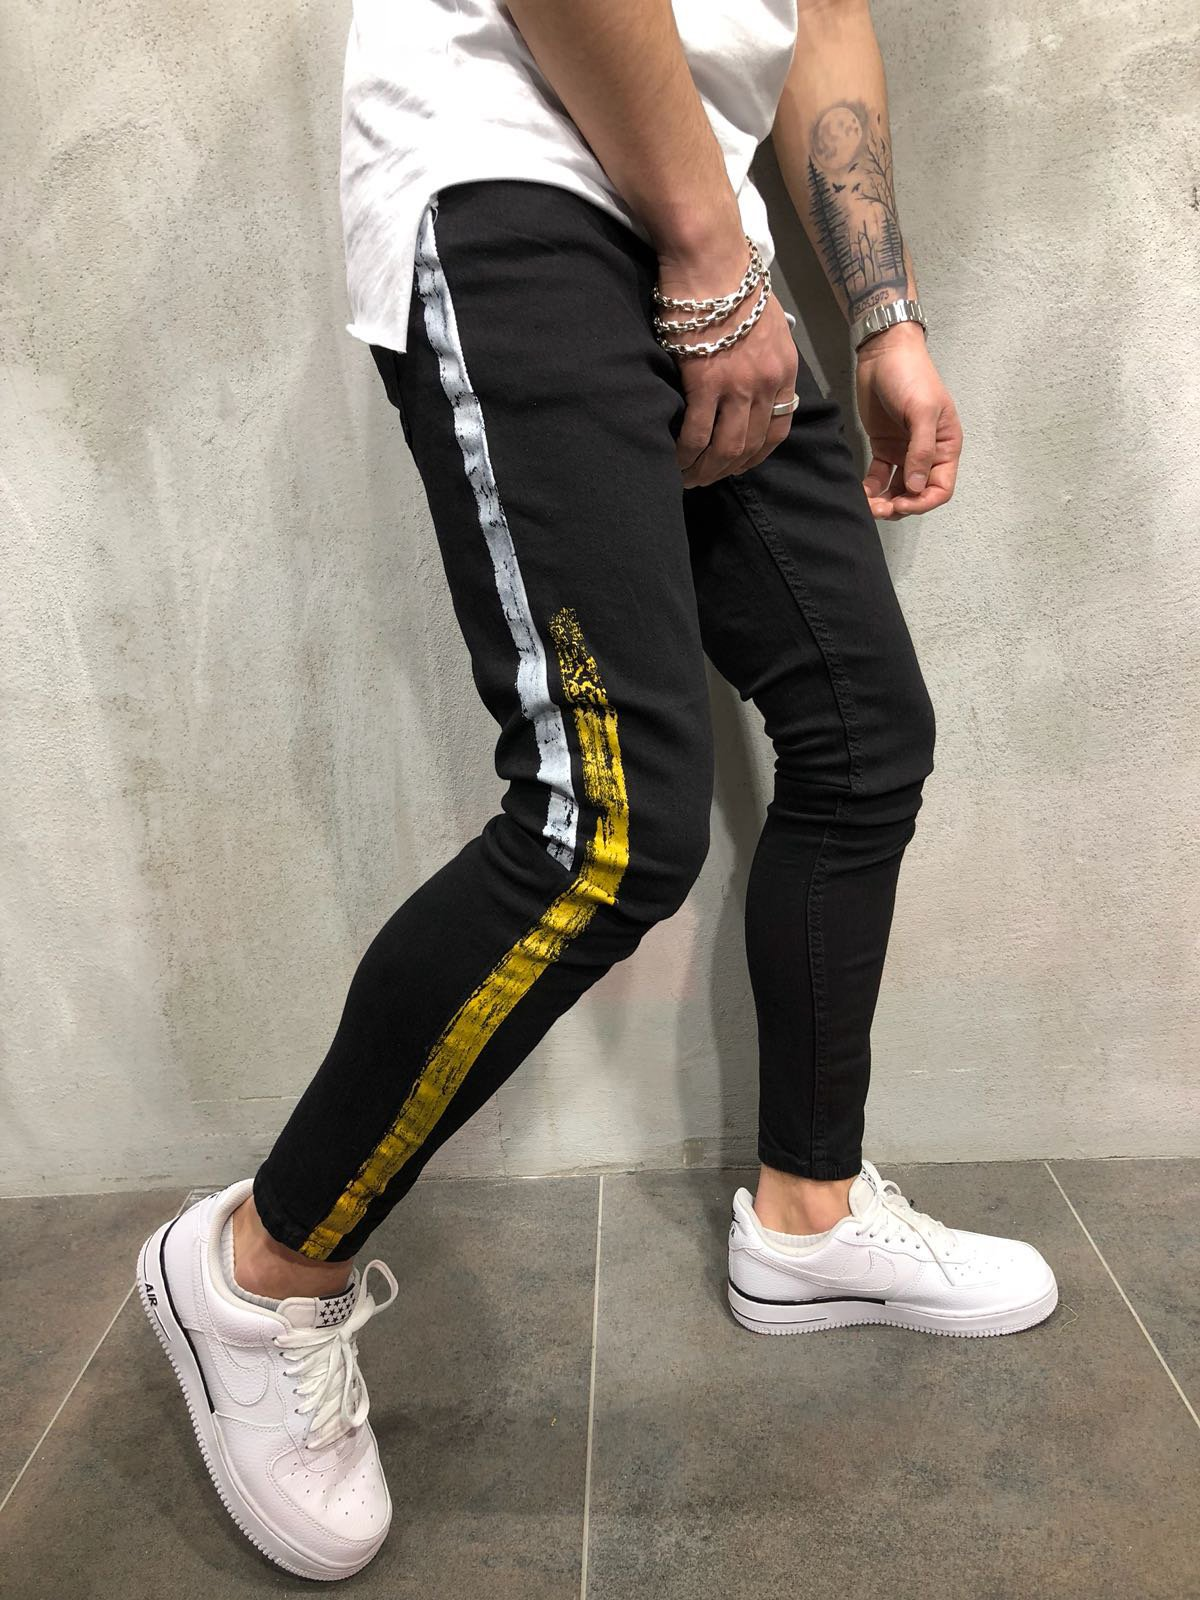 Fashion New Jeans 2019 New Streetwear Autumn Stitching Sweatpants Men Fashion Male Casual Pants Top Quality Trousers